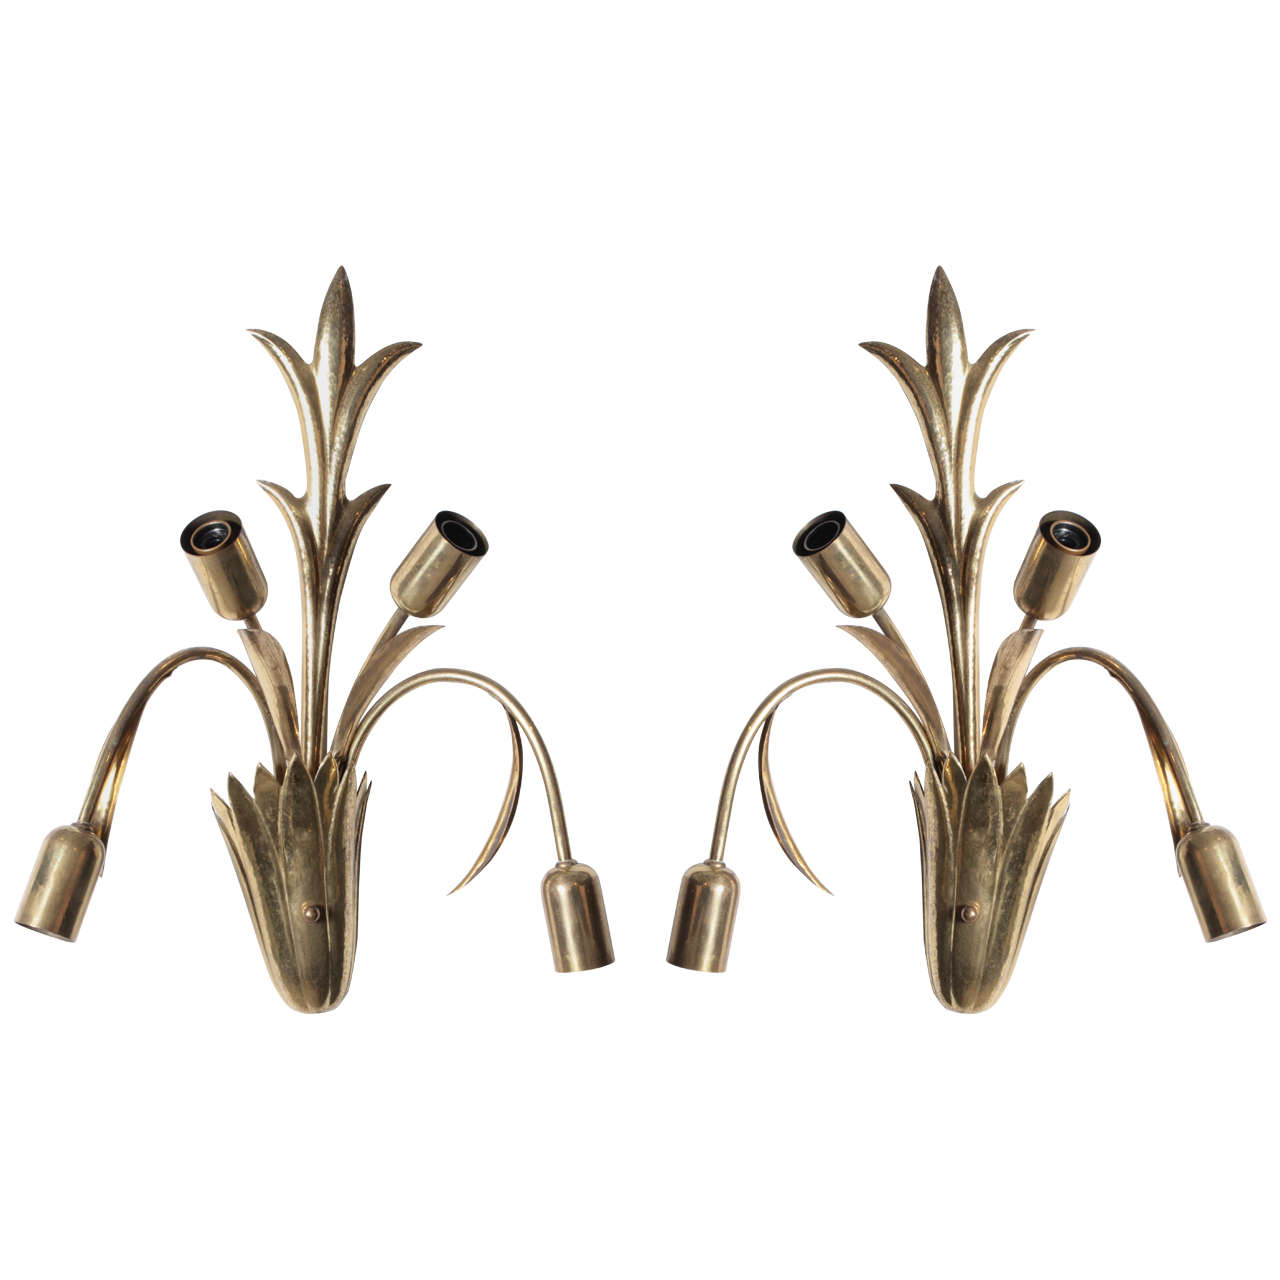 Pair of 1940s Italian Sconces